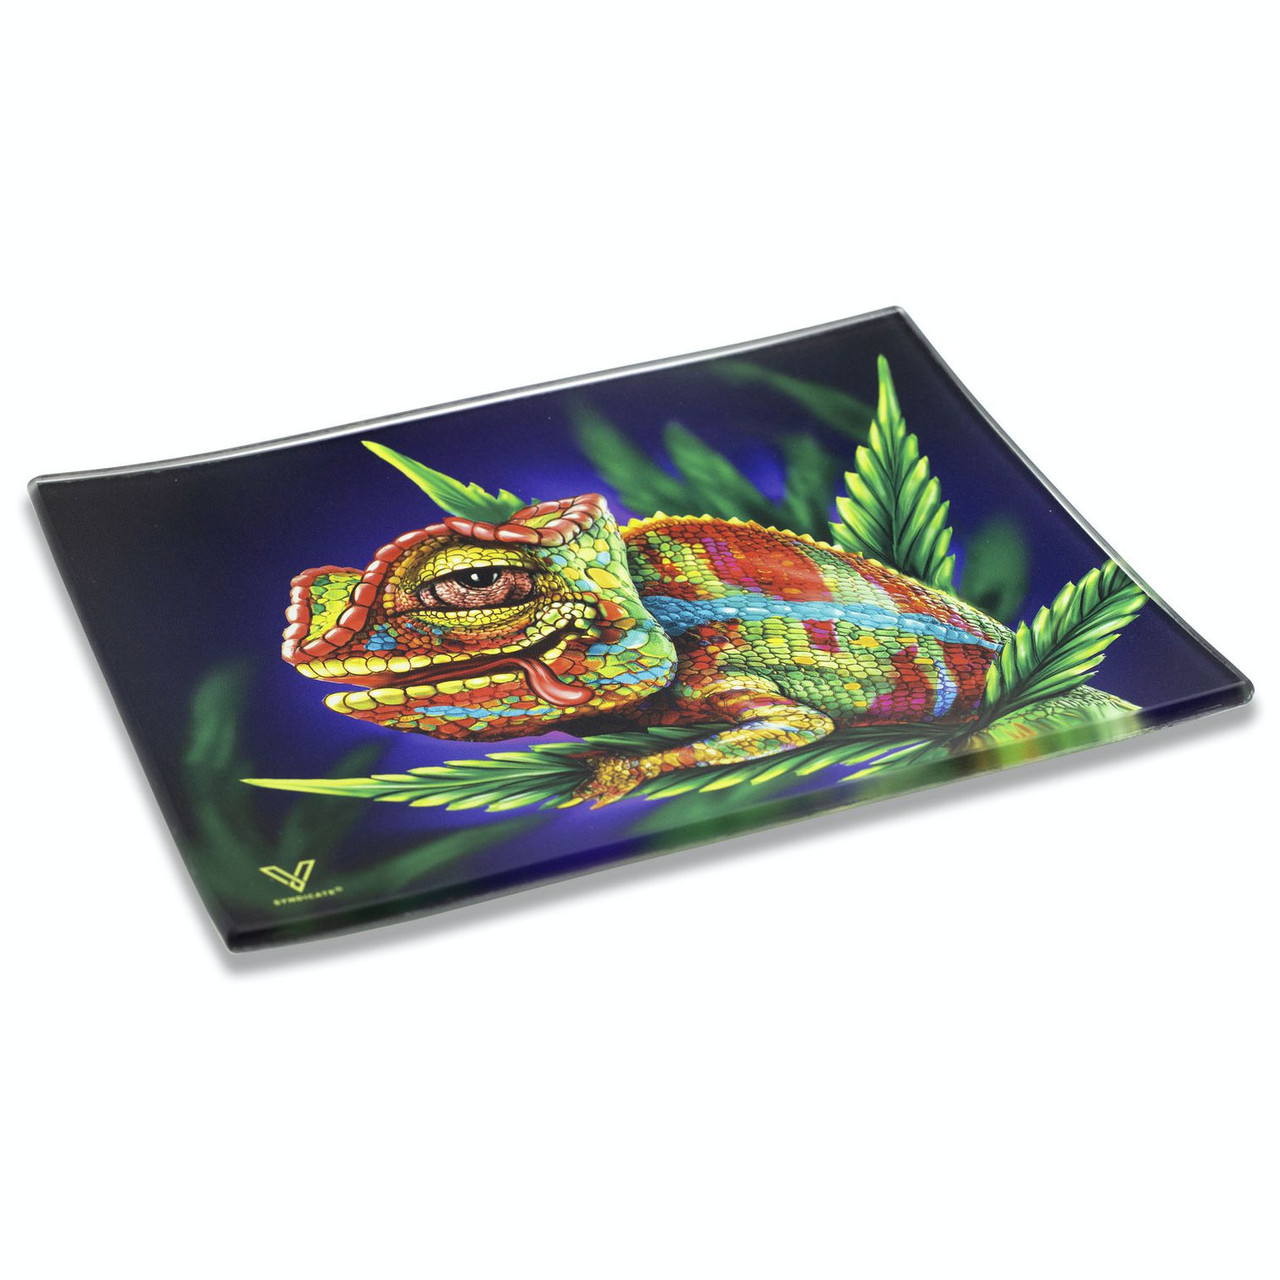 CHAMELEON GLASS TRAY SMALL SIDE PROFILE